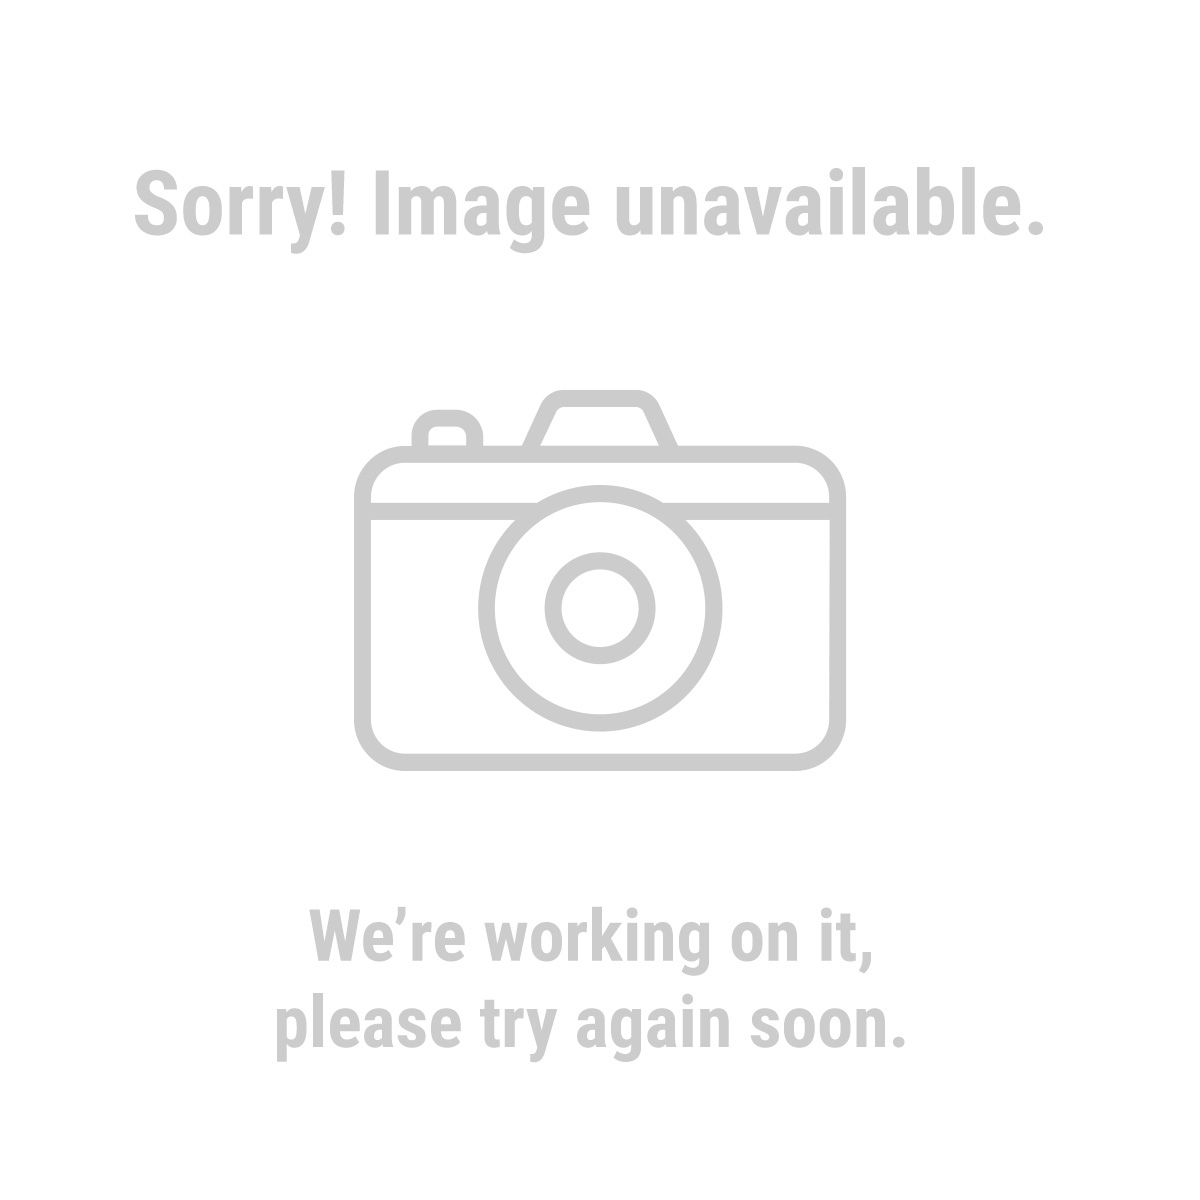 99681 Multipurpose Workbench with Lighting and Outlet